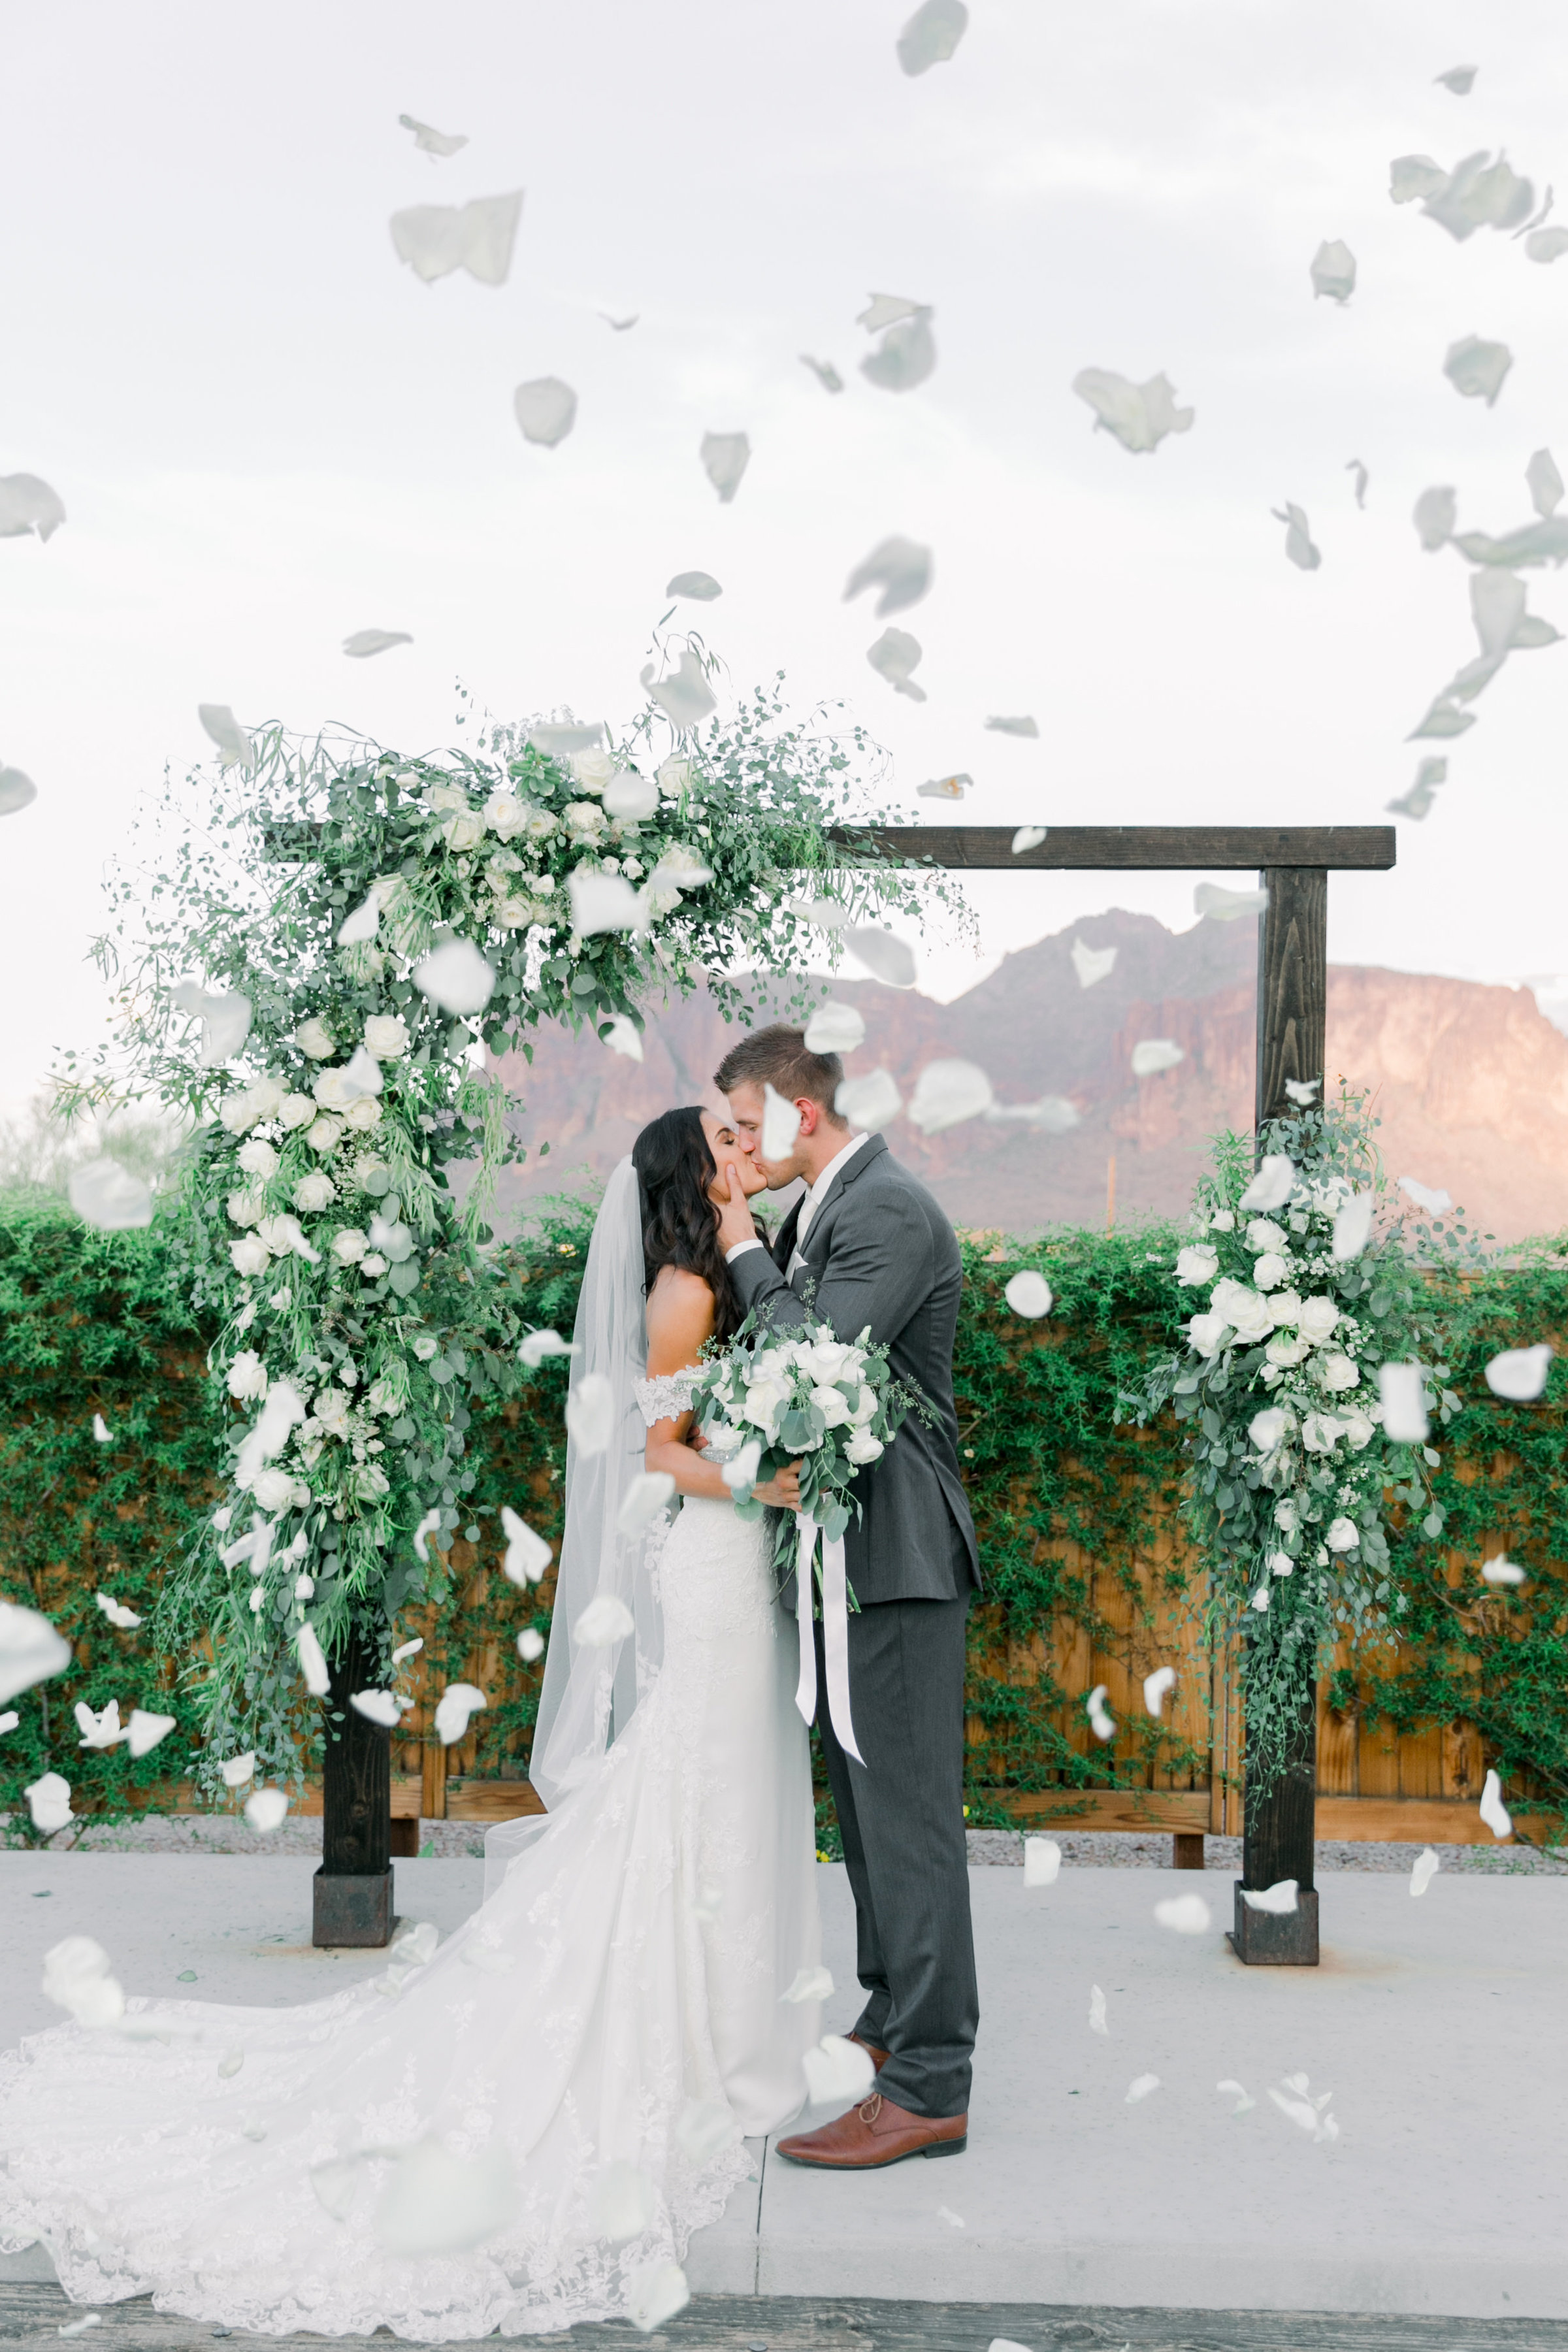 Karlie Colleen Photography - The Paseo Venue - Arizona Wedding - Jackie & Ryan-10